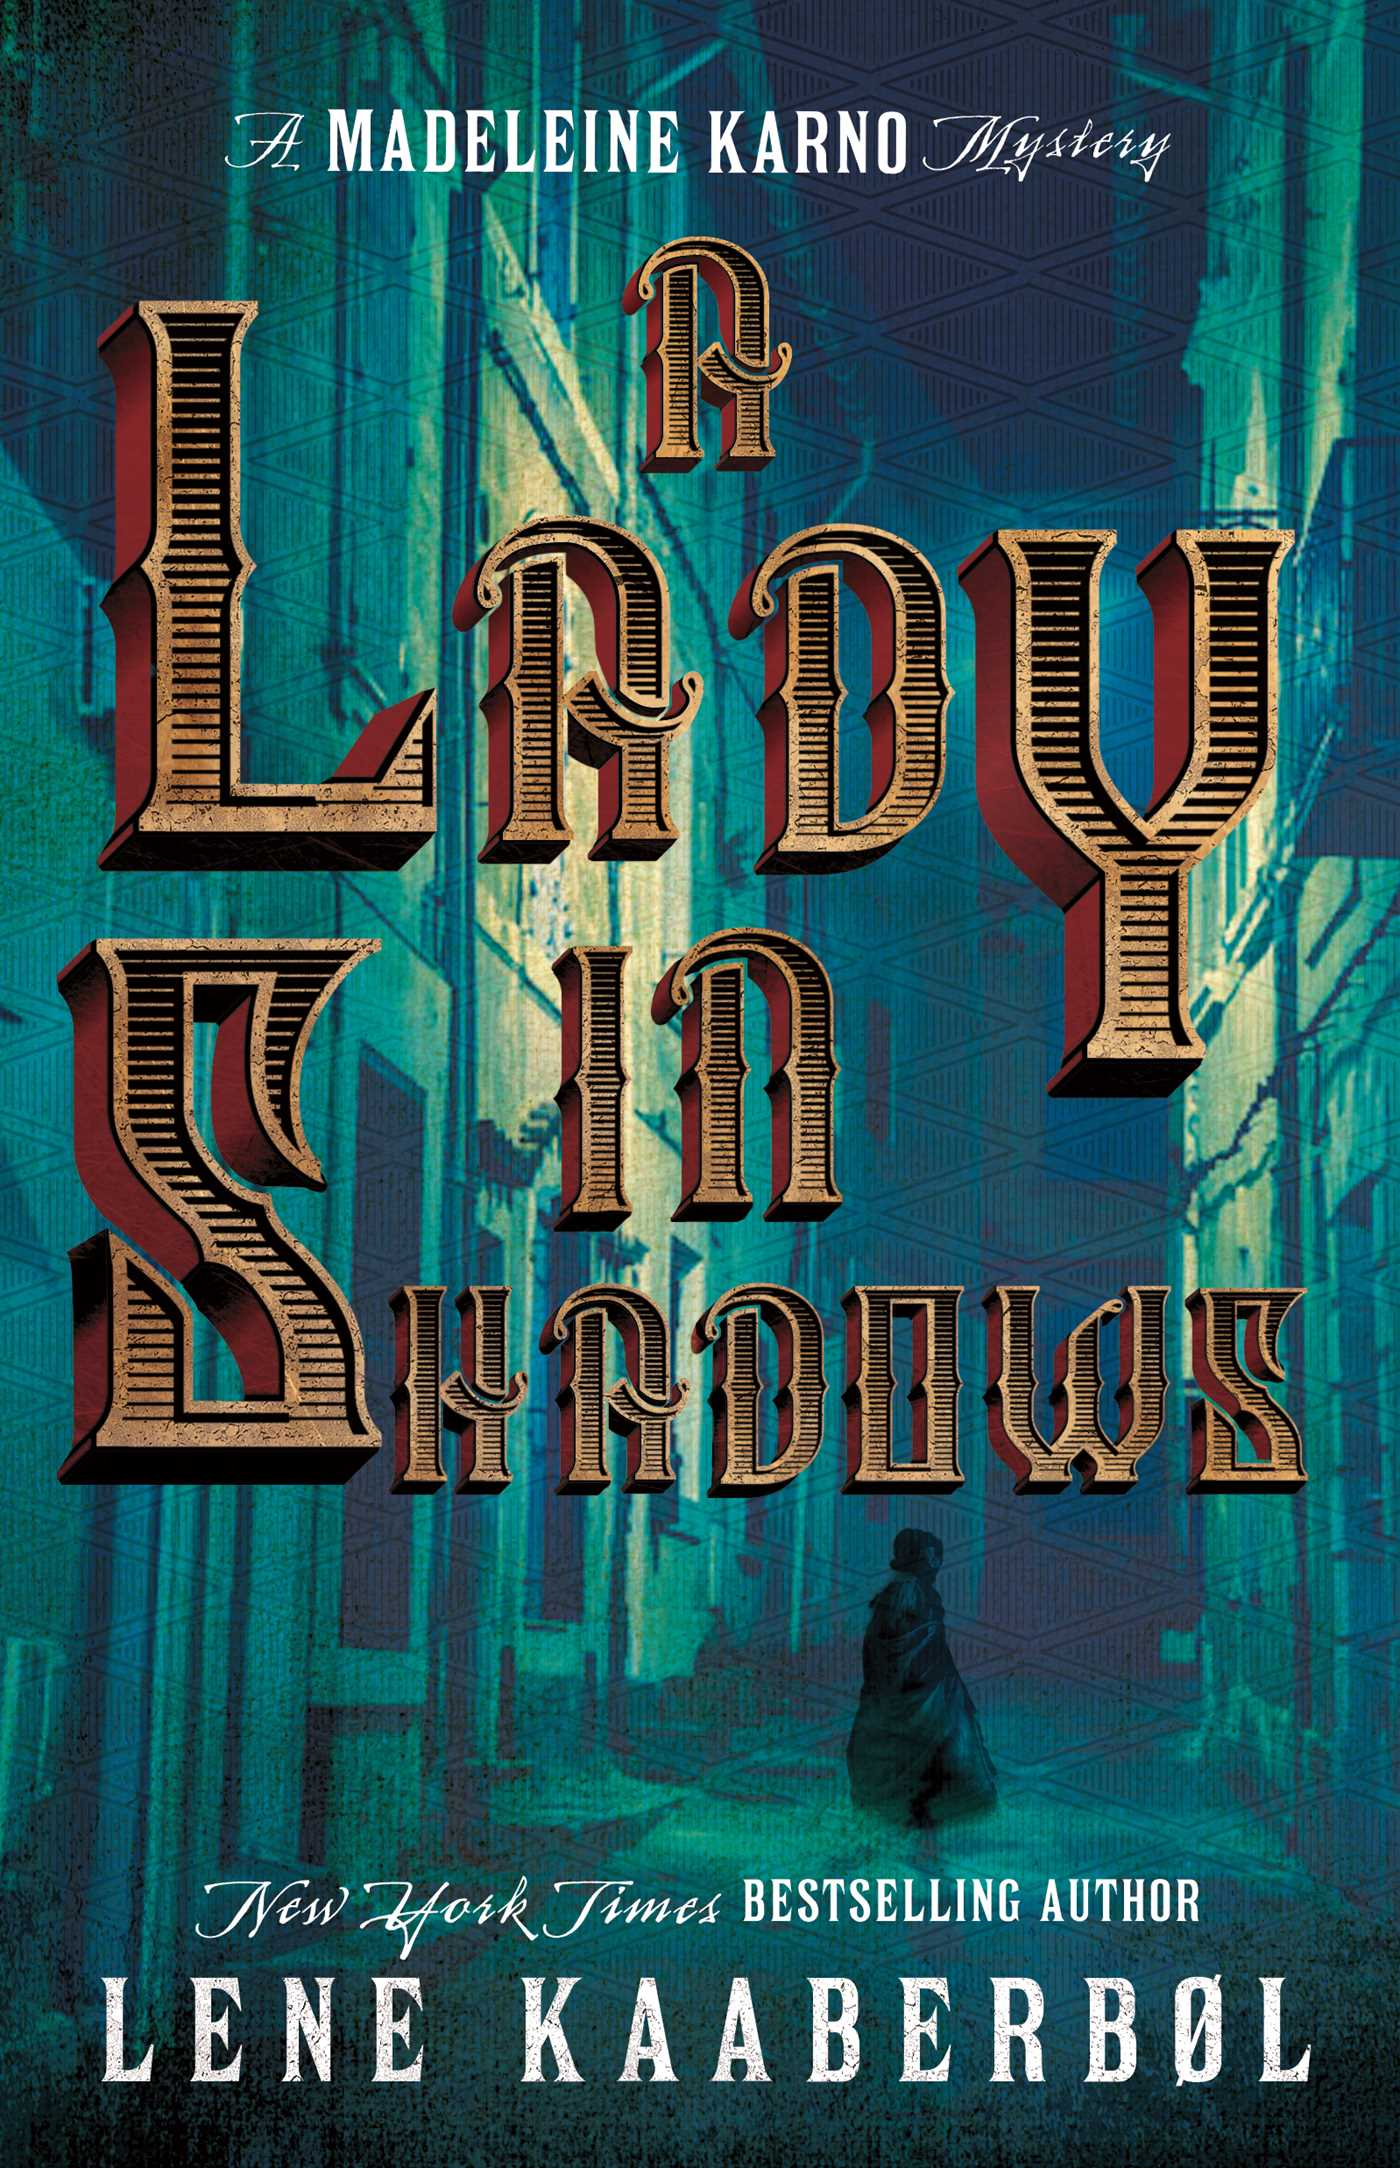 A lady in shadows 9781476731421 hr